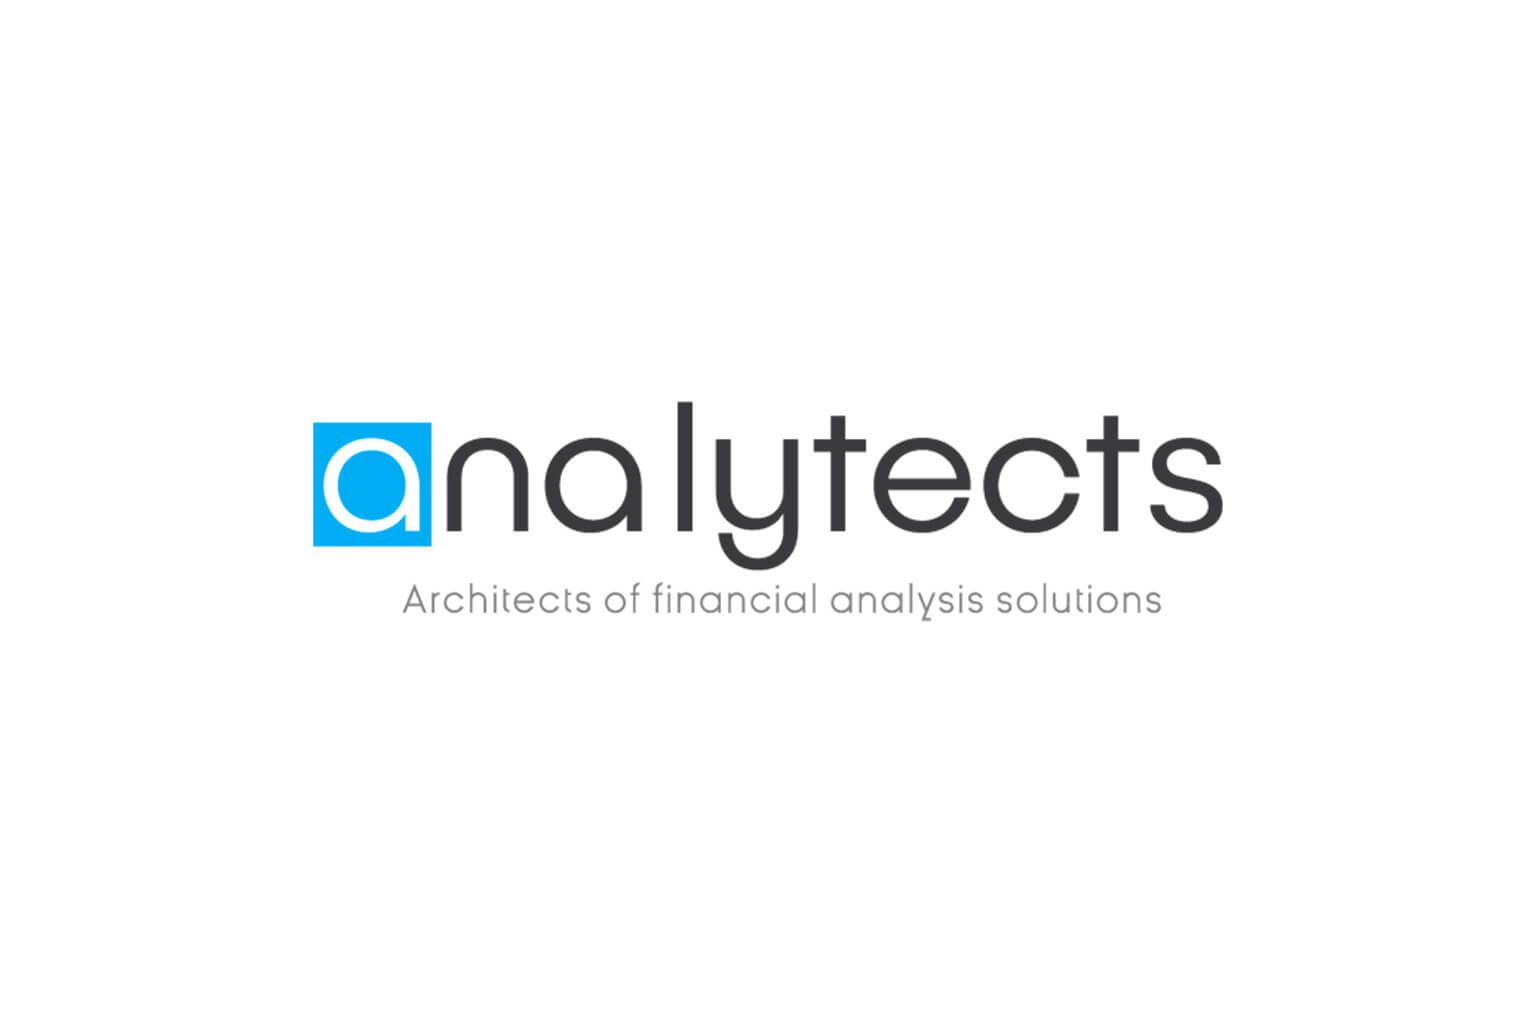 Analytects